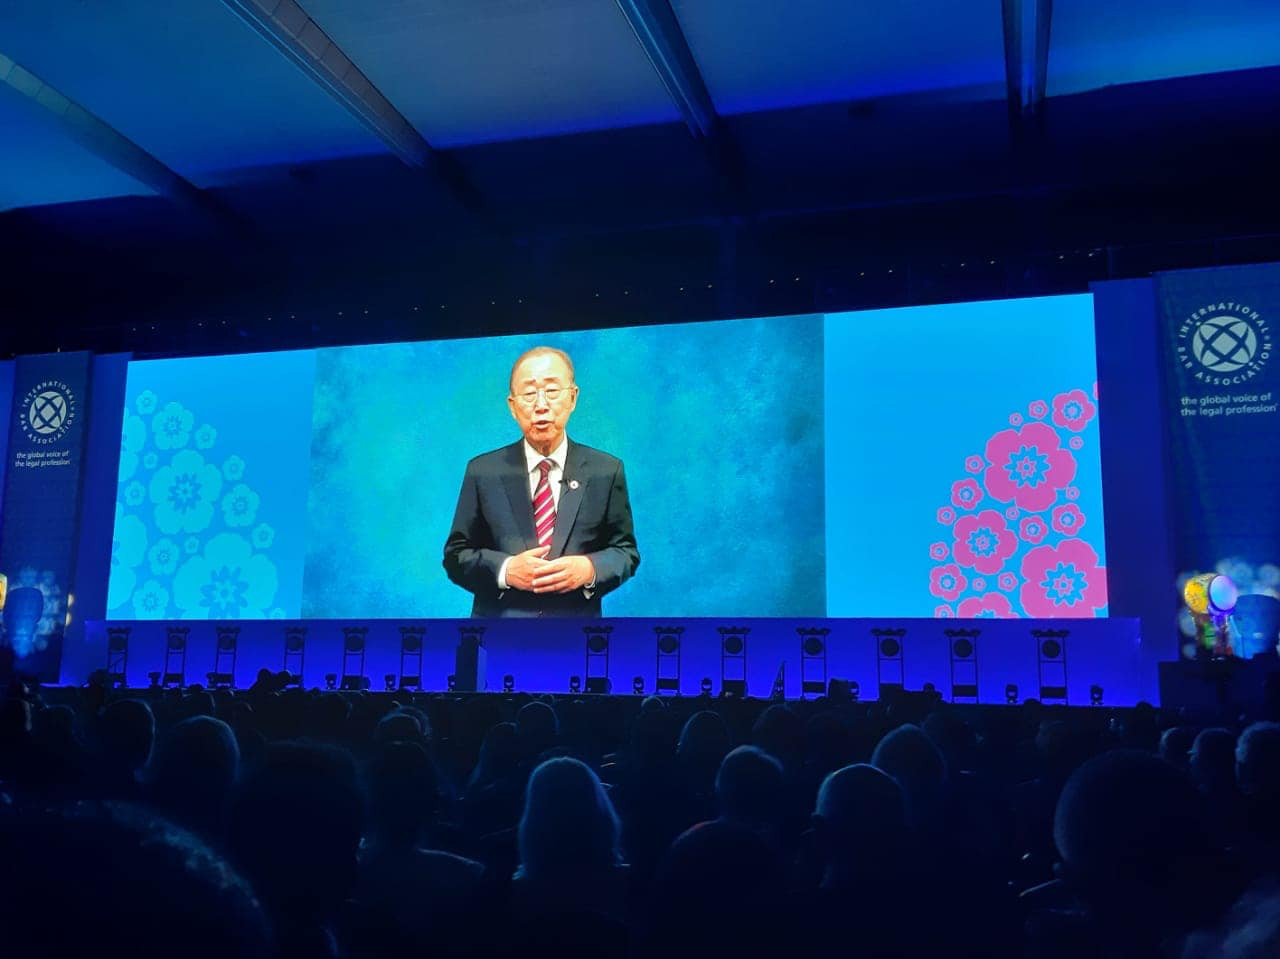 Bang Ki-moon, Former Secretary-General of the United Nations , shared thought about the IBA 2019